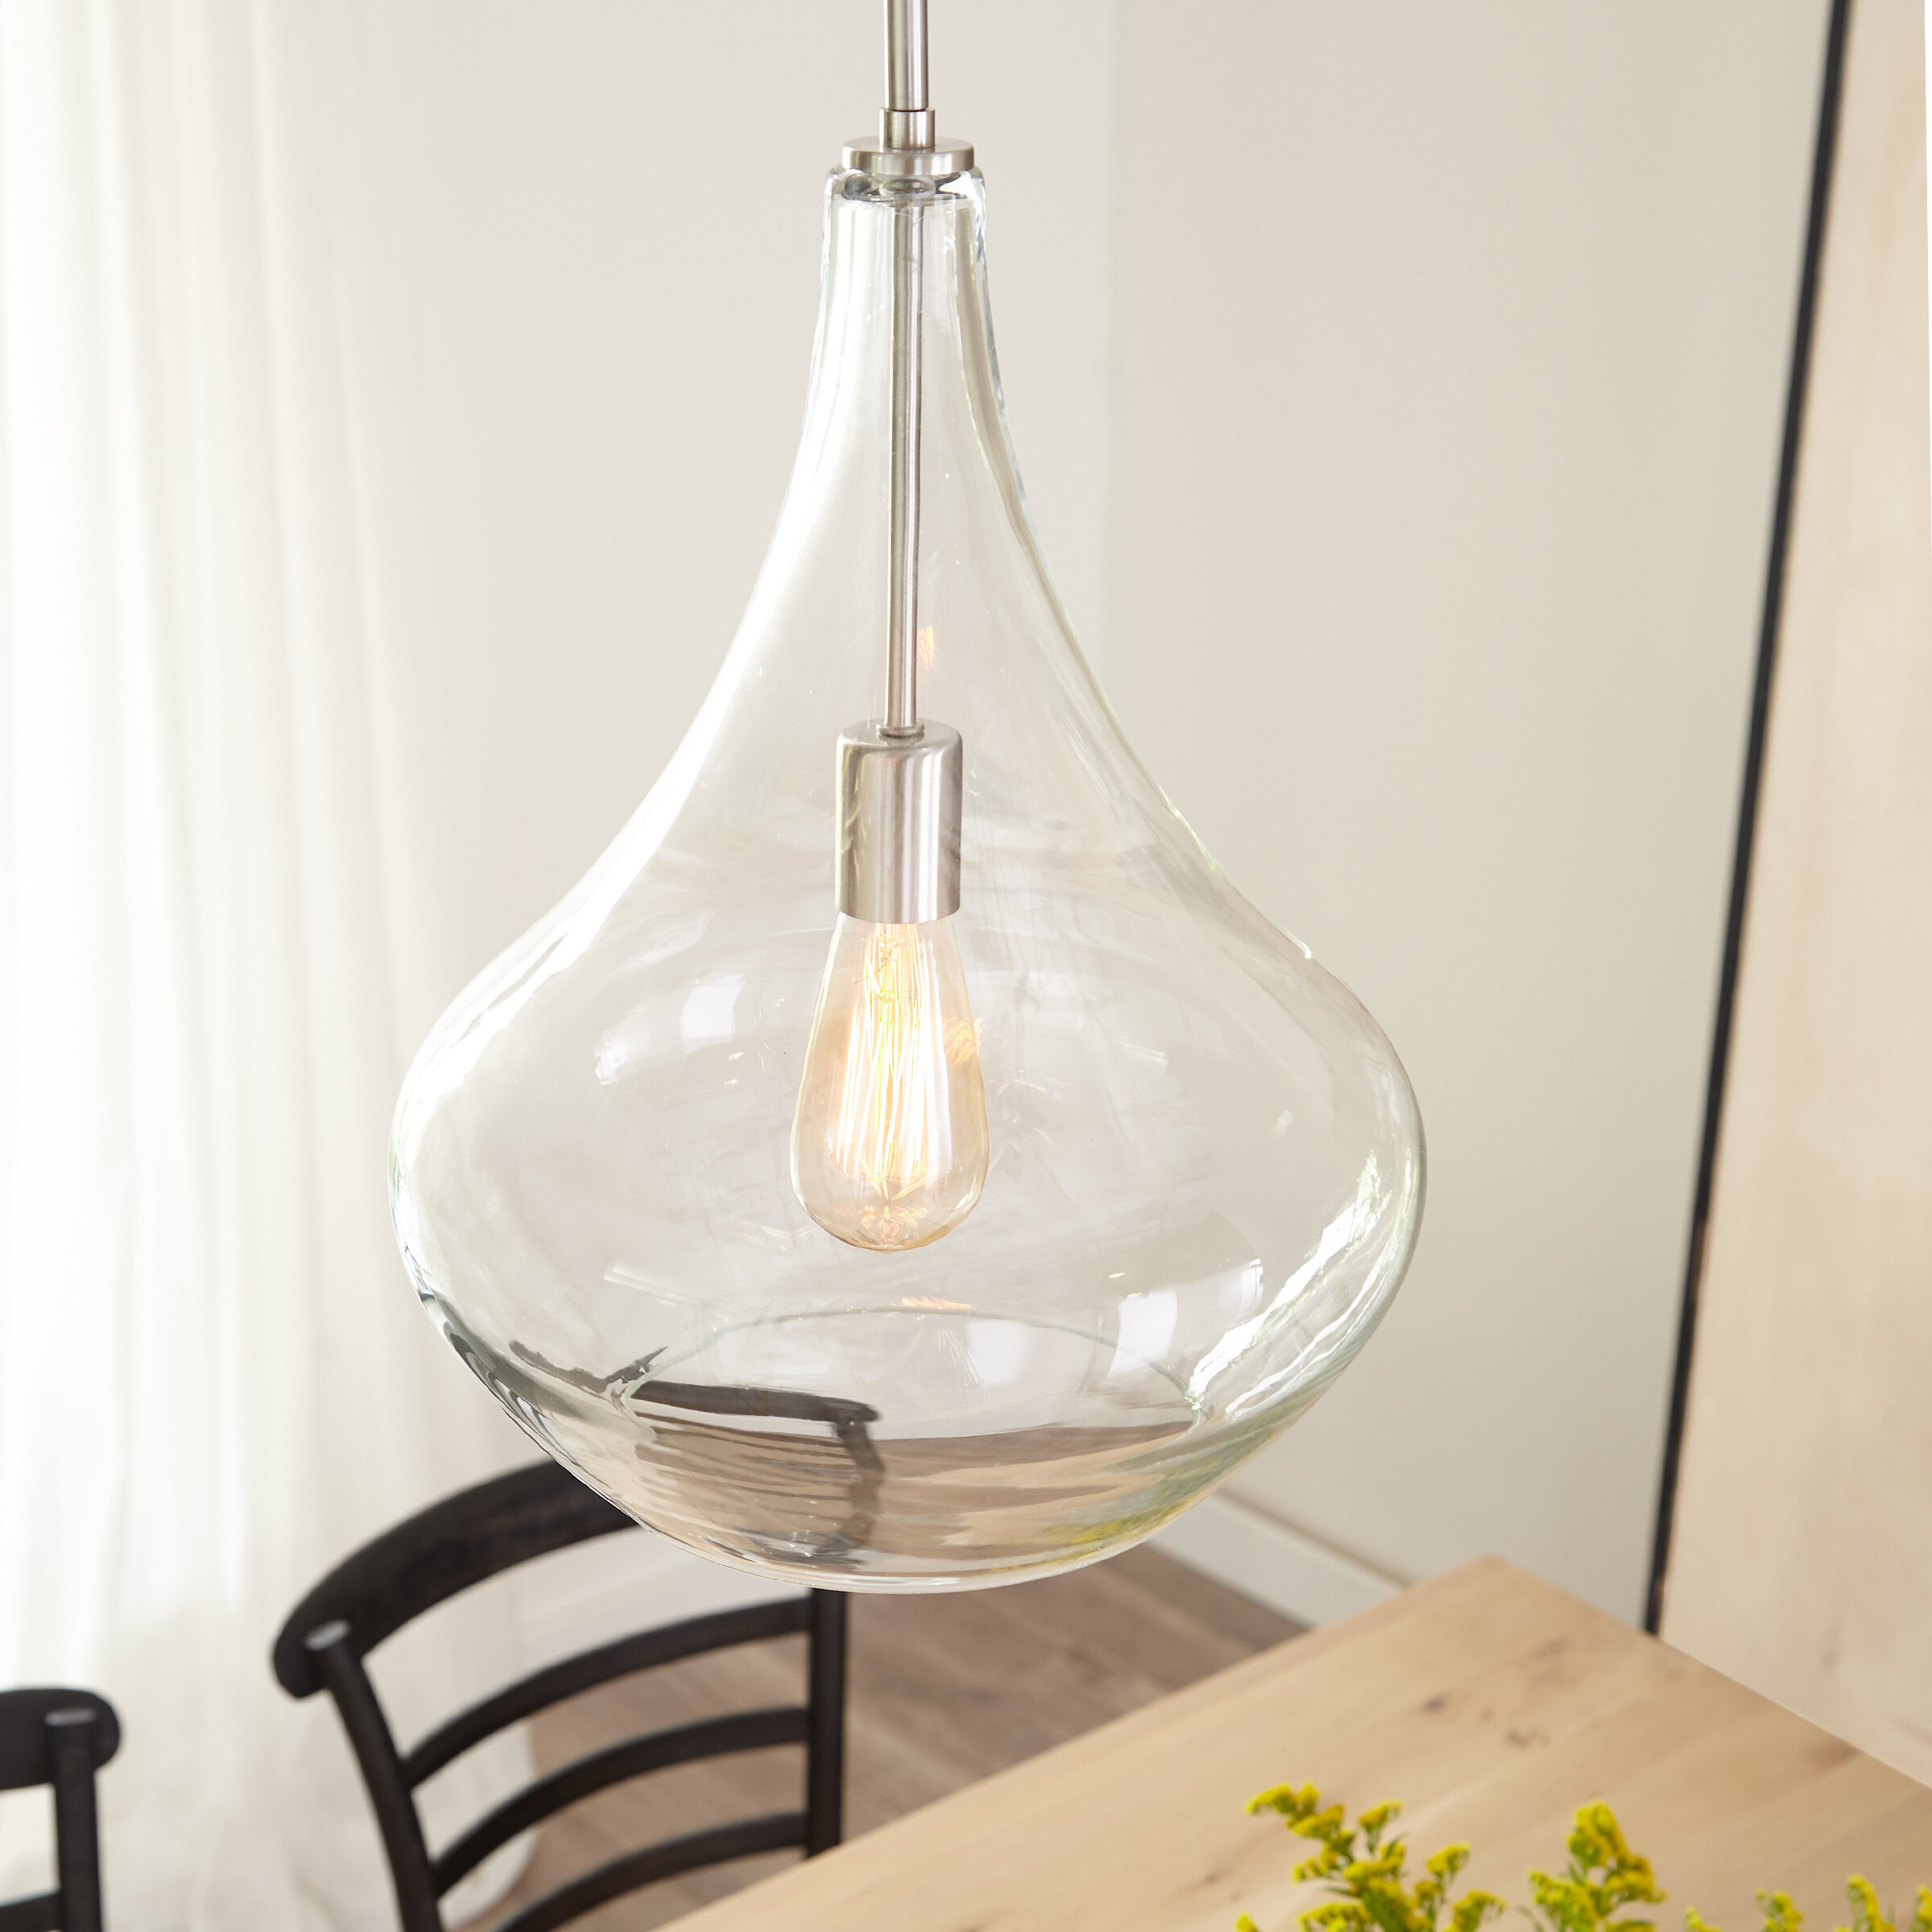 Geometric Highland Dunes Pendant Lighting You Ll Love In 2021 Wayfair